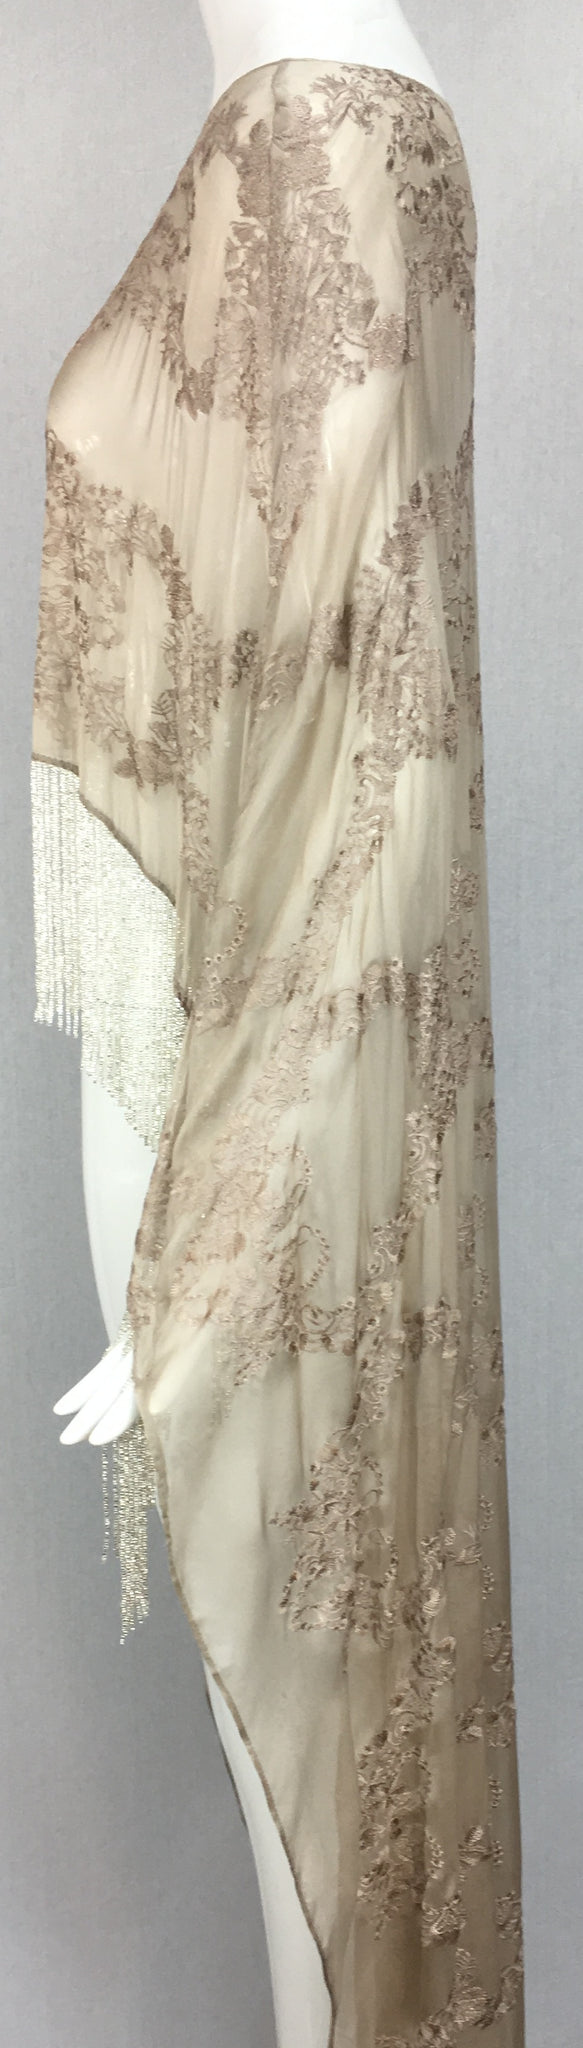 Embroidered Silk Chiffon Cape with Fringe